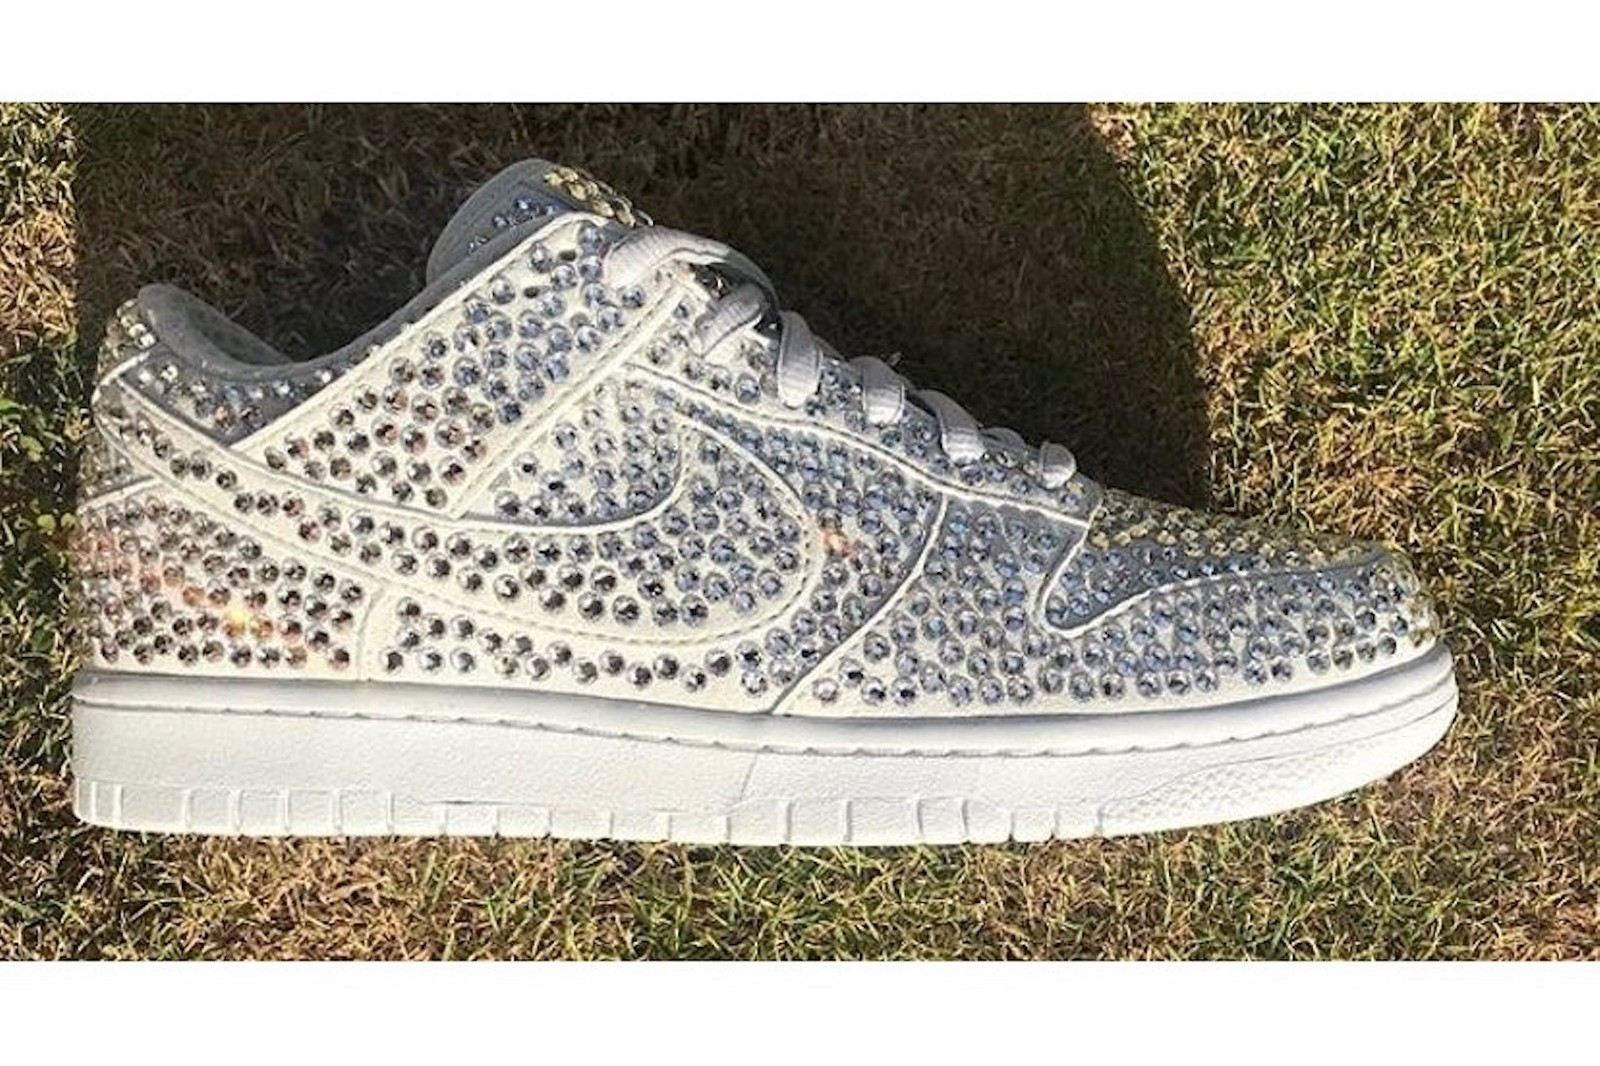 nike cactus plant fleamarket cpfm collaboration dunk low sneakers bejeweled crystals rhinestones white shoes footwear